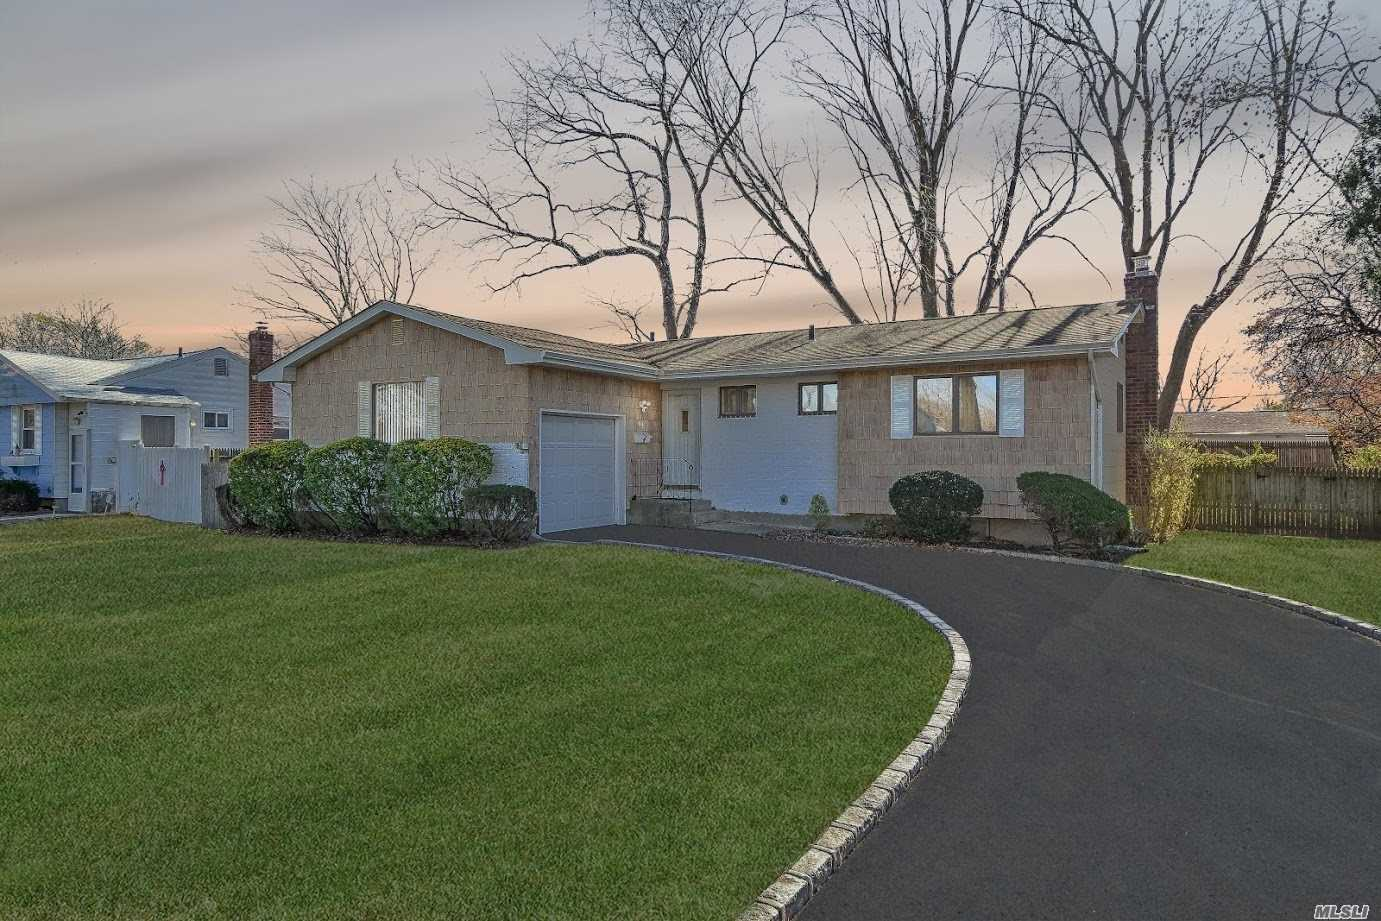 Don't Miss This Well-Maintained And Charming Ranch In The Baseball Section Of Commack! The Home Sits On A .25 Acre In Sought After Commack School District. Featuring Vinyl Siding With Hardwood Floors Throughout. Near Great Shopping And Restaurants. Superb Starter Home And Priced To Sell.